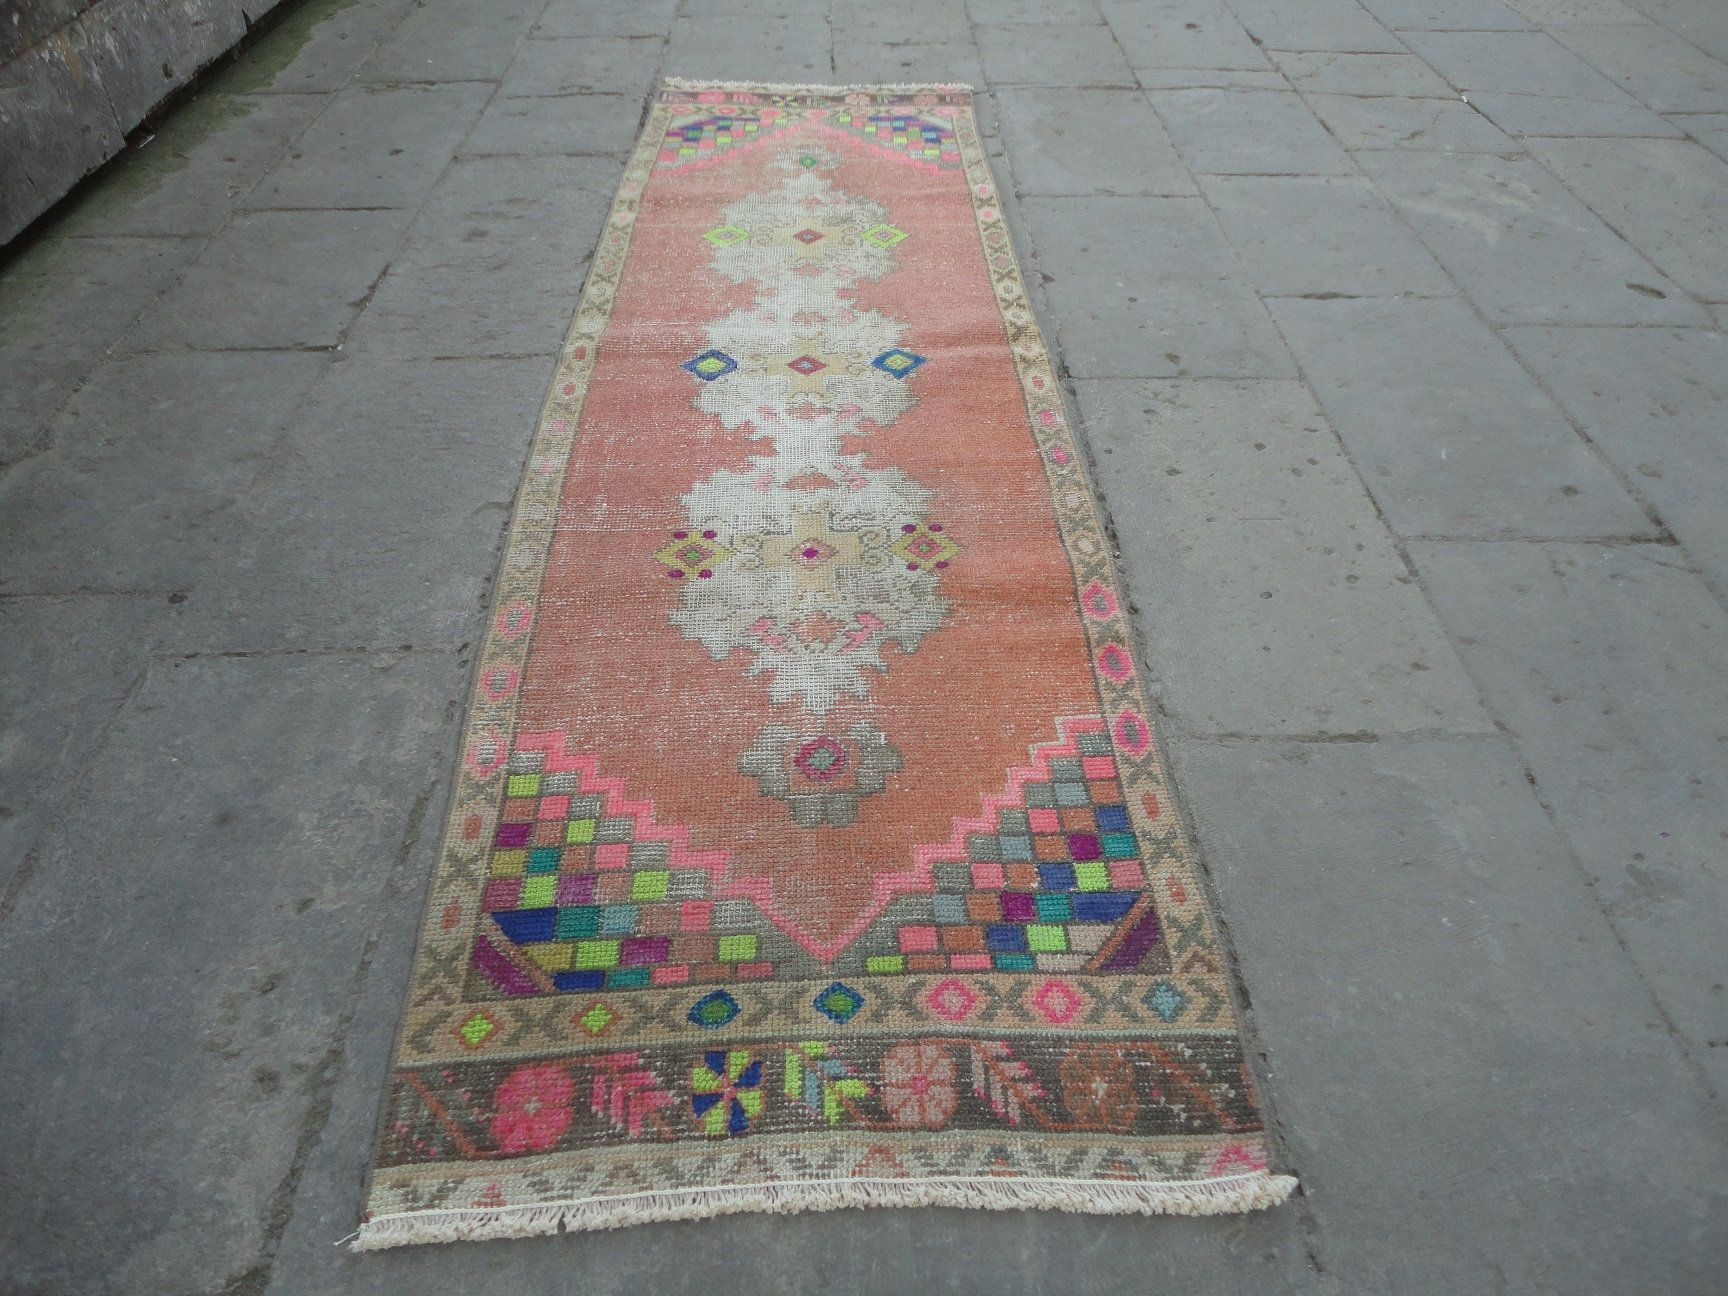 Hallway Rug, Turkish Kitchen Rug 256 x 73 CM: 8' 4'' x 2' 4'' FEET,Aztec Rug,Hand Woven Corridor Rug,PinkTurkish Carpet Long Narrow Boho Rug #longnarrowkitchen Hallway Rug, Turkish Kitchen Rug 256 x 73 CM: 8' 4'' x 2' 4'' FEET,Aztec Rug,Hand Woven Corridor Rug,PinkTurkish Carpet Long Narrow Boho Rug by VINTAGERUSTICRUG on Etsy #longnarrowkitchen Hallway Rug, Turkish Kitchen Rug 256 x 73 CM: 8' 4'' x 2' 4'' FEET,Aztec Rug,Hand Woven Corridor Rug,PinkTurkish Carpet Long Narrow Boho Rug #longnarrow #longnarrowkitchen